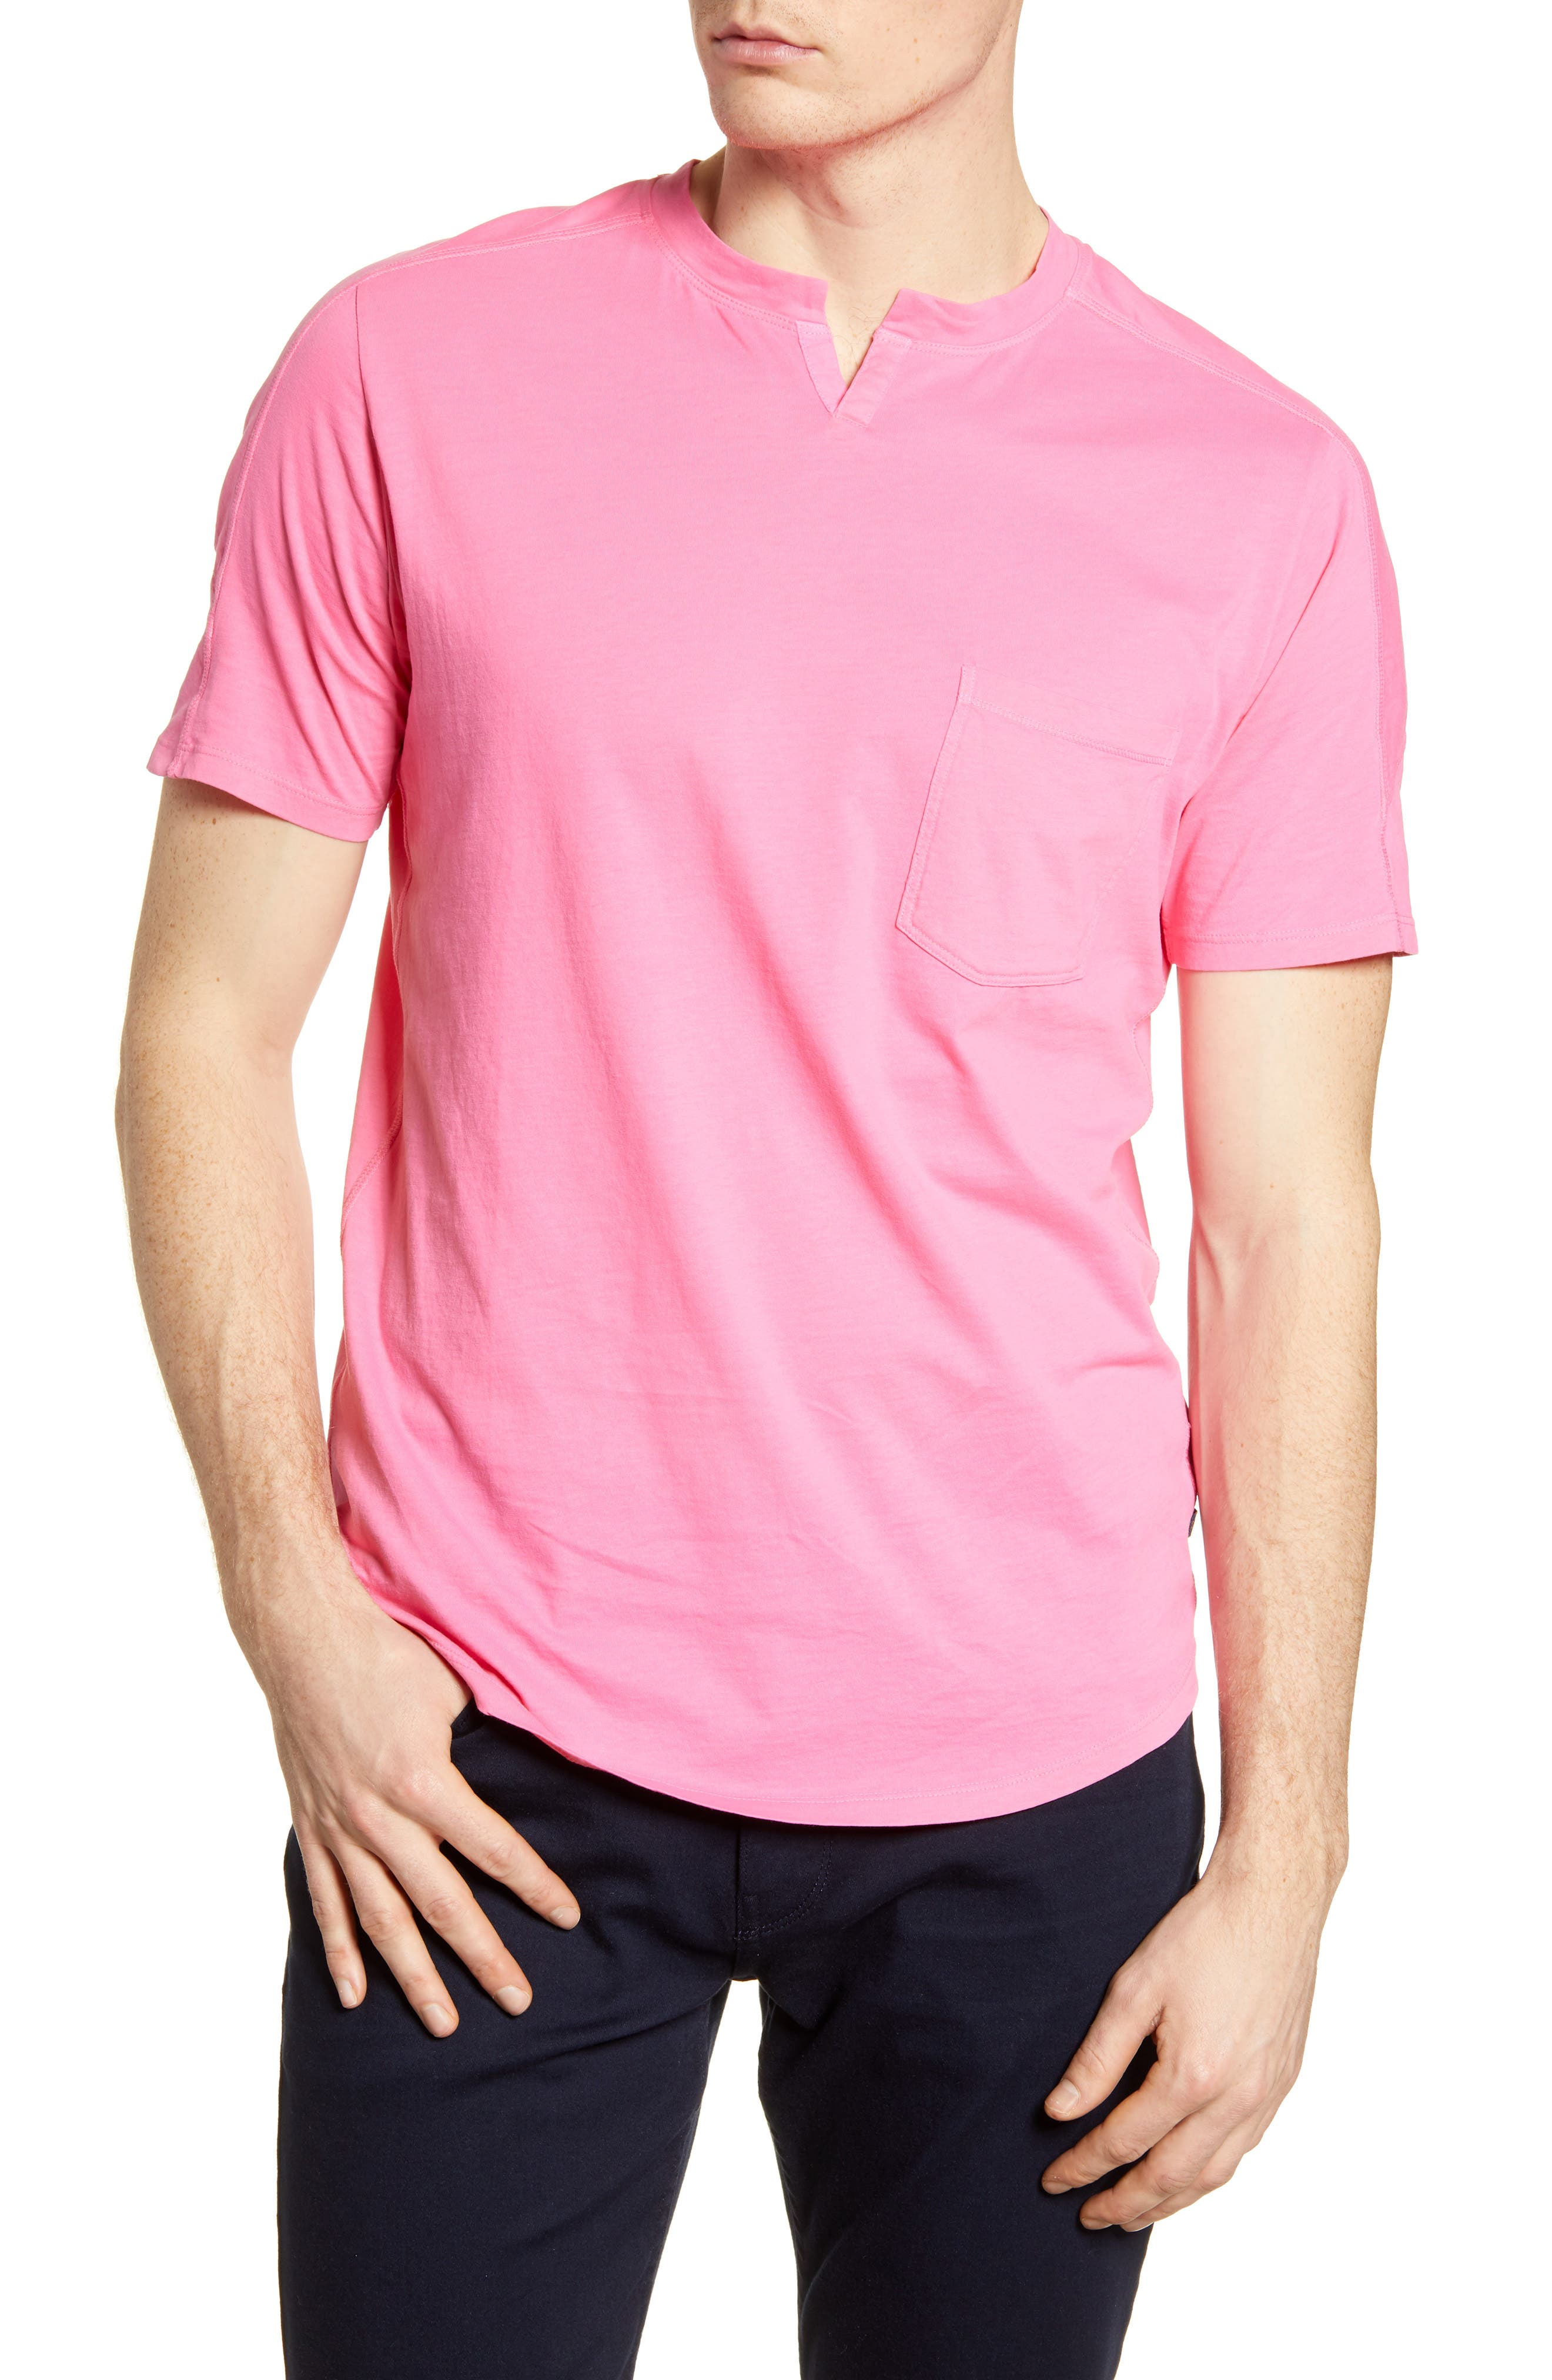 A notched front and yoked back update the look of a T-shirt made from neon-colored cotton so it never gets lost in the crowd. Style Name: Good Man Brand Notch Crew Cotton T-Shirt. Style Number: 5653672. Available in stores.